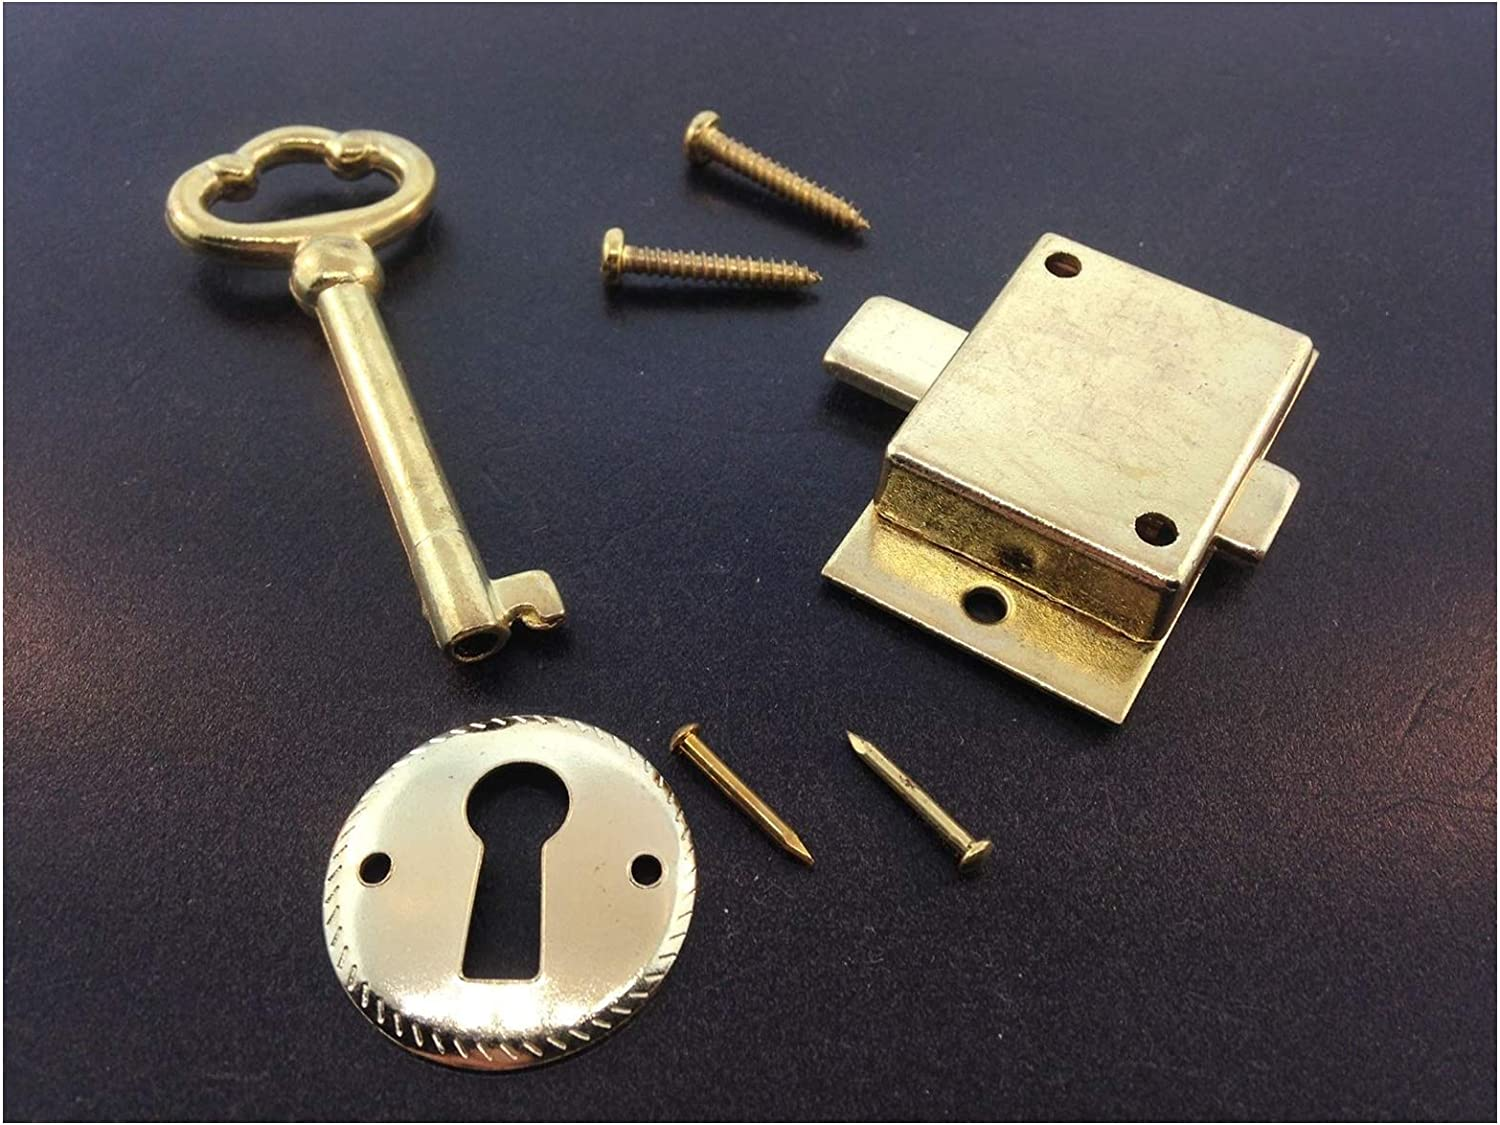 Galapagoz Grandfather or Grandmother Clock Flush Mount Front Door Lock and Key Set Brass USA